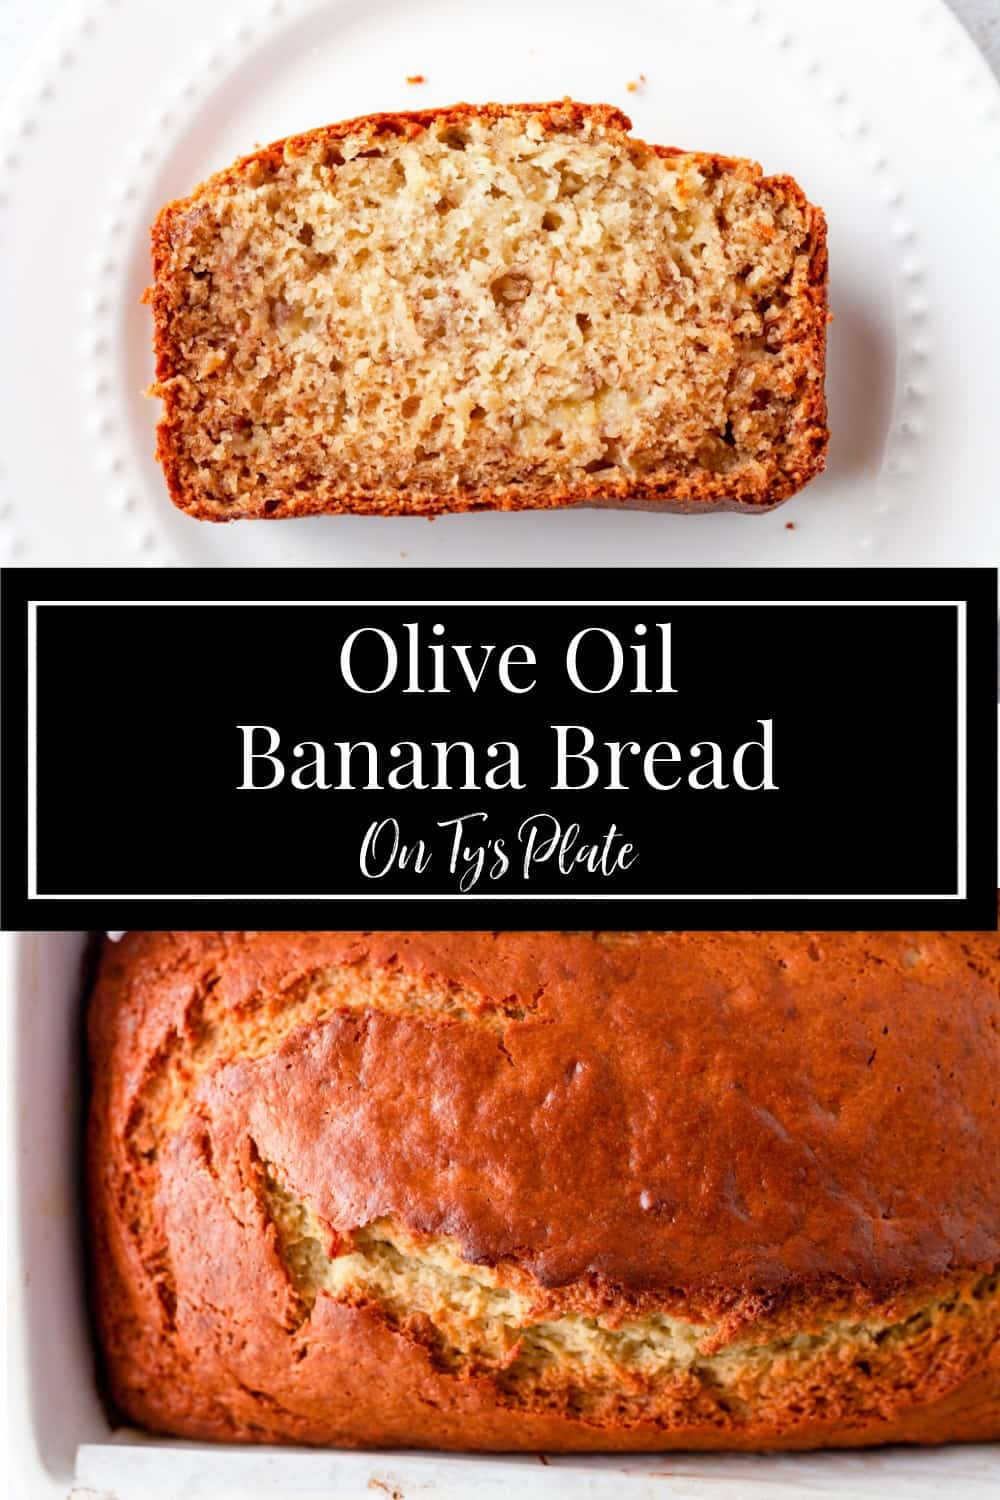 Olive Oil Banana Bread